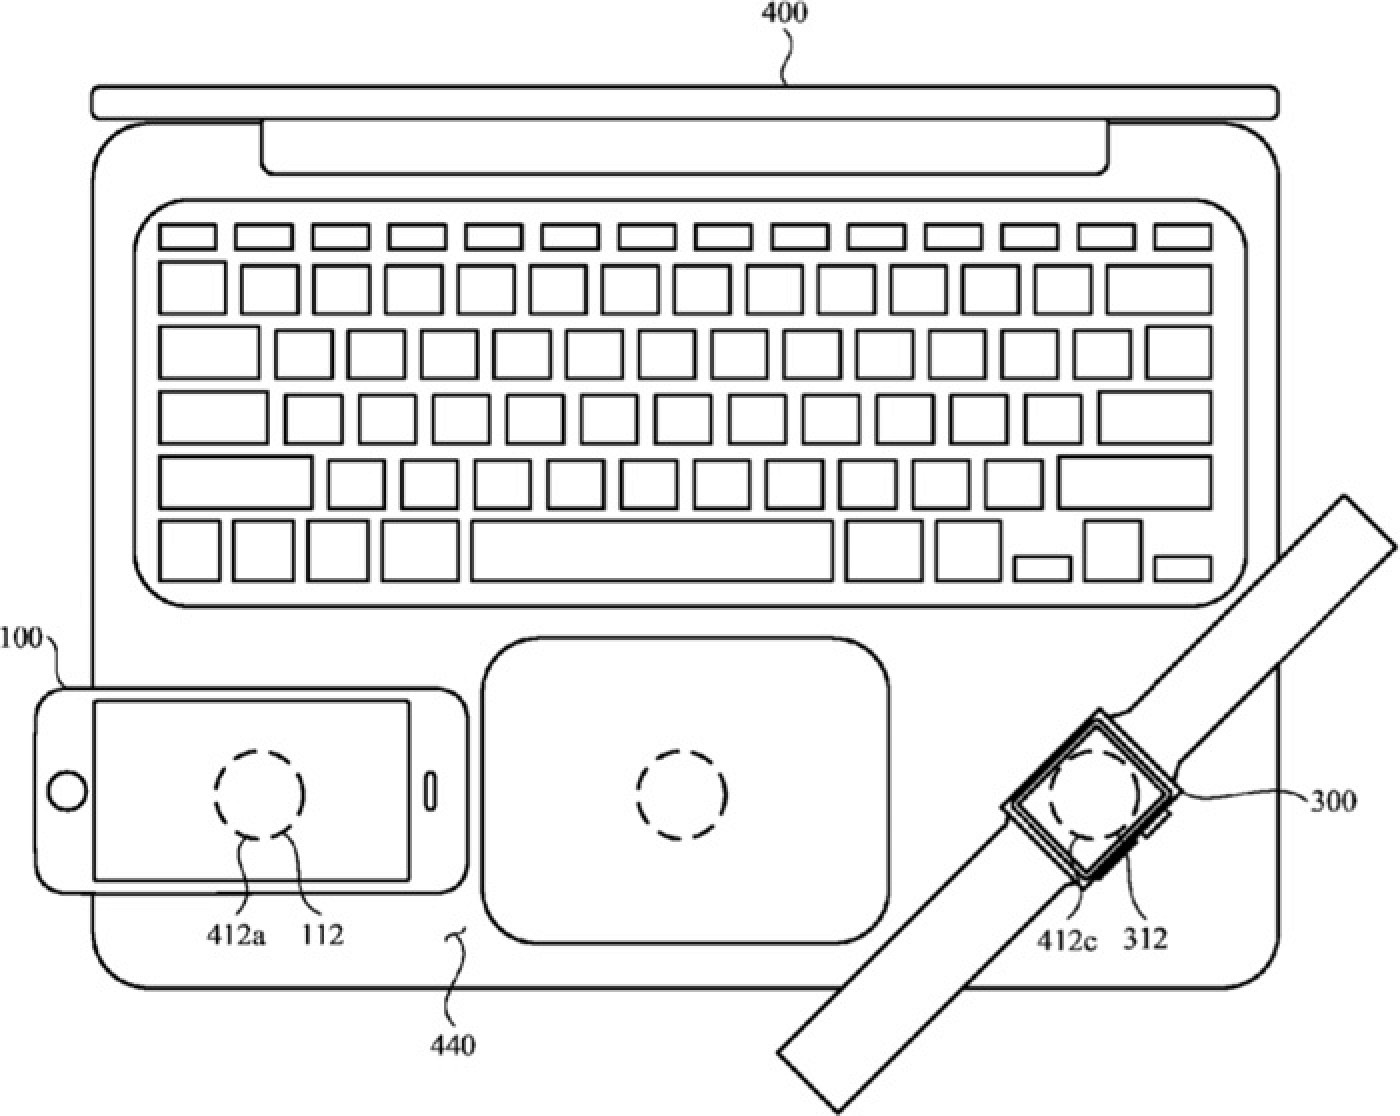 iPhone 8 May Use Apple's In-House Inductive Wireless Charging Rather Than Technology From Energous